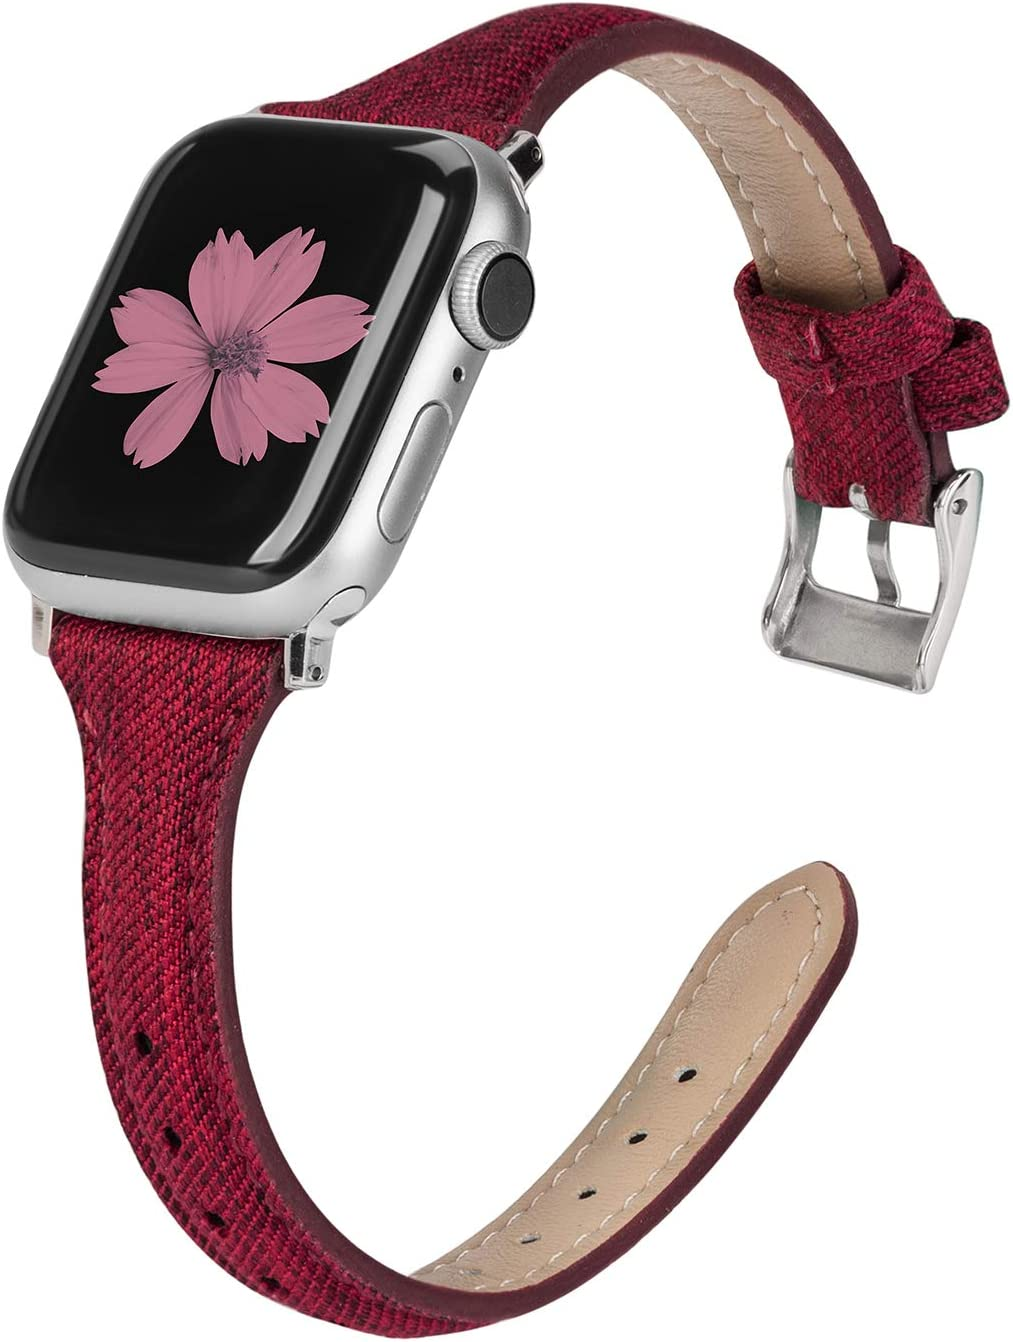 TOYOUTHS Compatible with Apple Watch Band 40mm 44mm Series 5 4 Woven Canvas Fabric Cloth Band Rose Gold Strap Wristband Women Men Compatible with iWatch Series 3 2 1 38mm 42mm, Red, 42mm